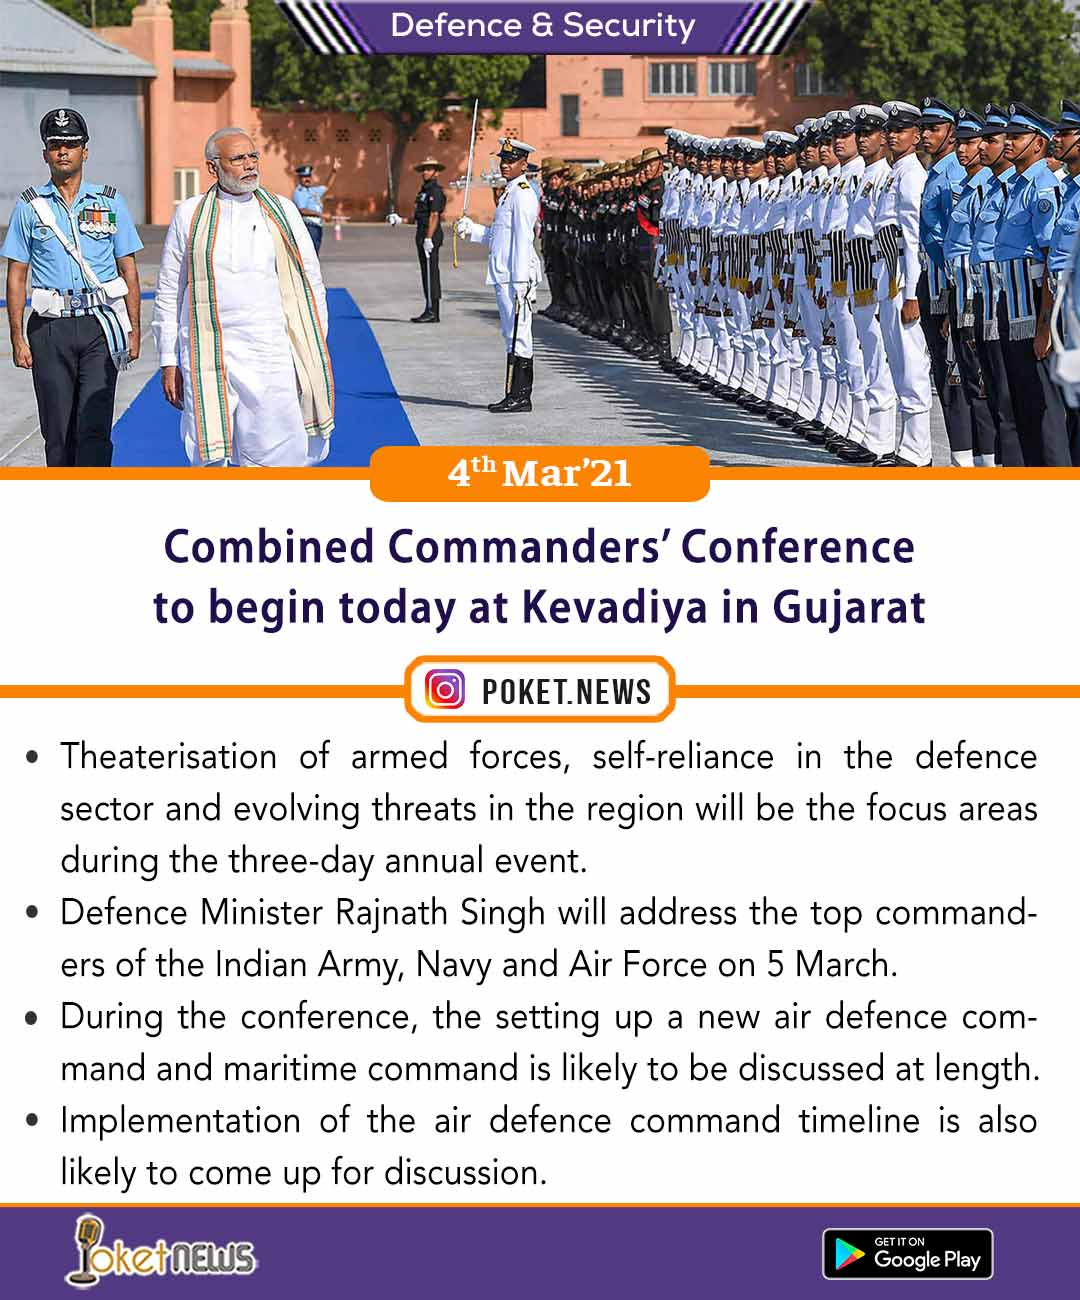 Combined Commanders' Conference to begin today at Kevadiya in Gujarat